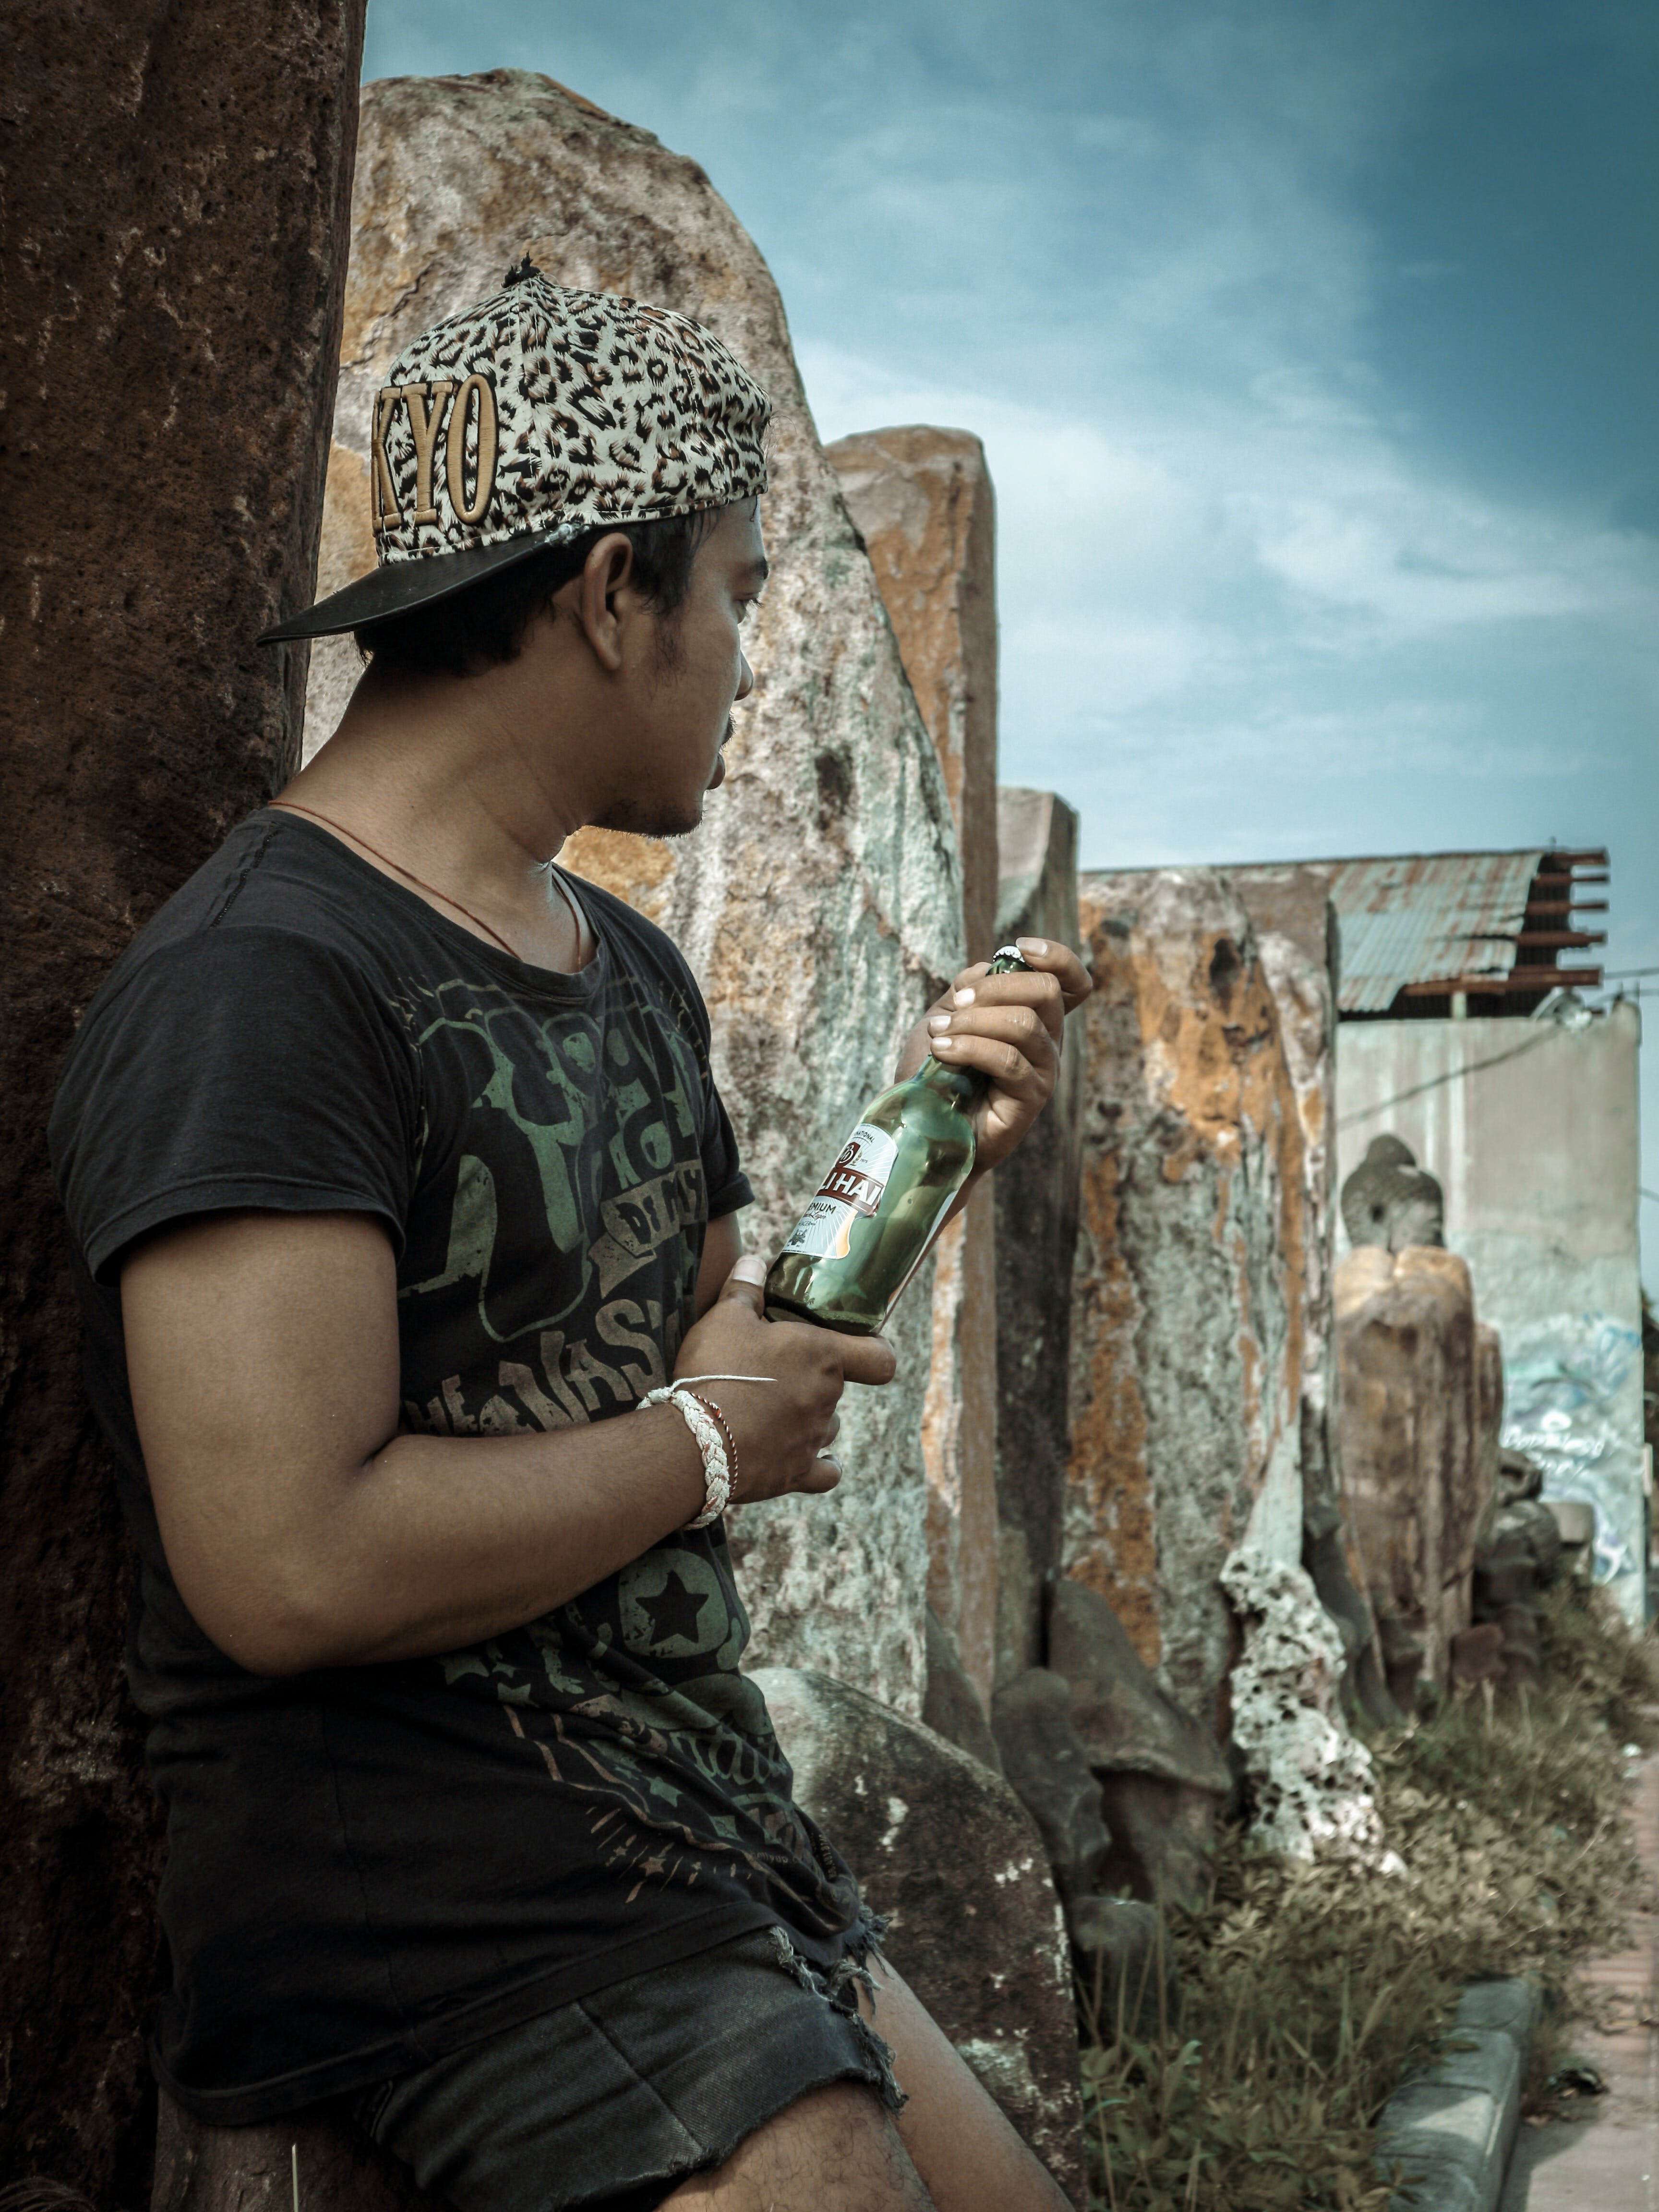 Free stock photo of alone, bali, beer, green